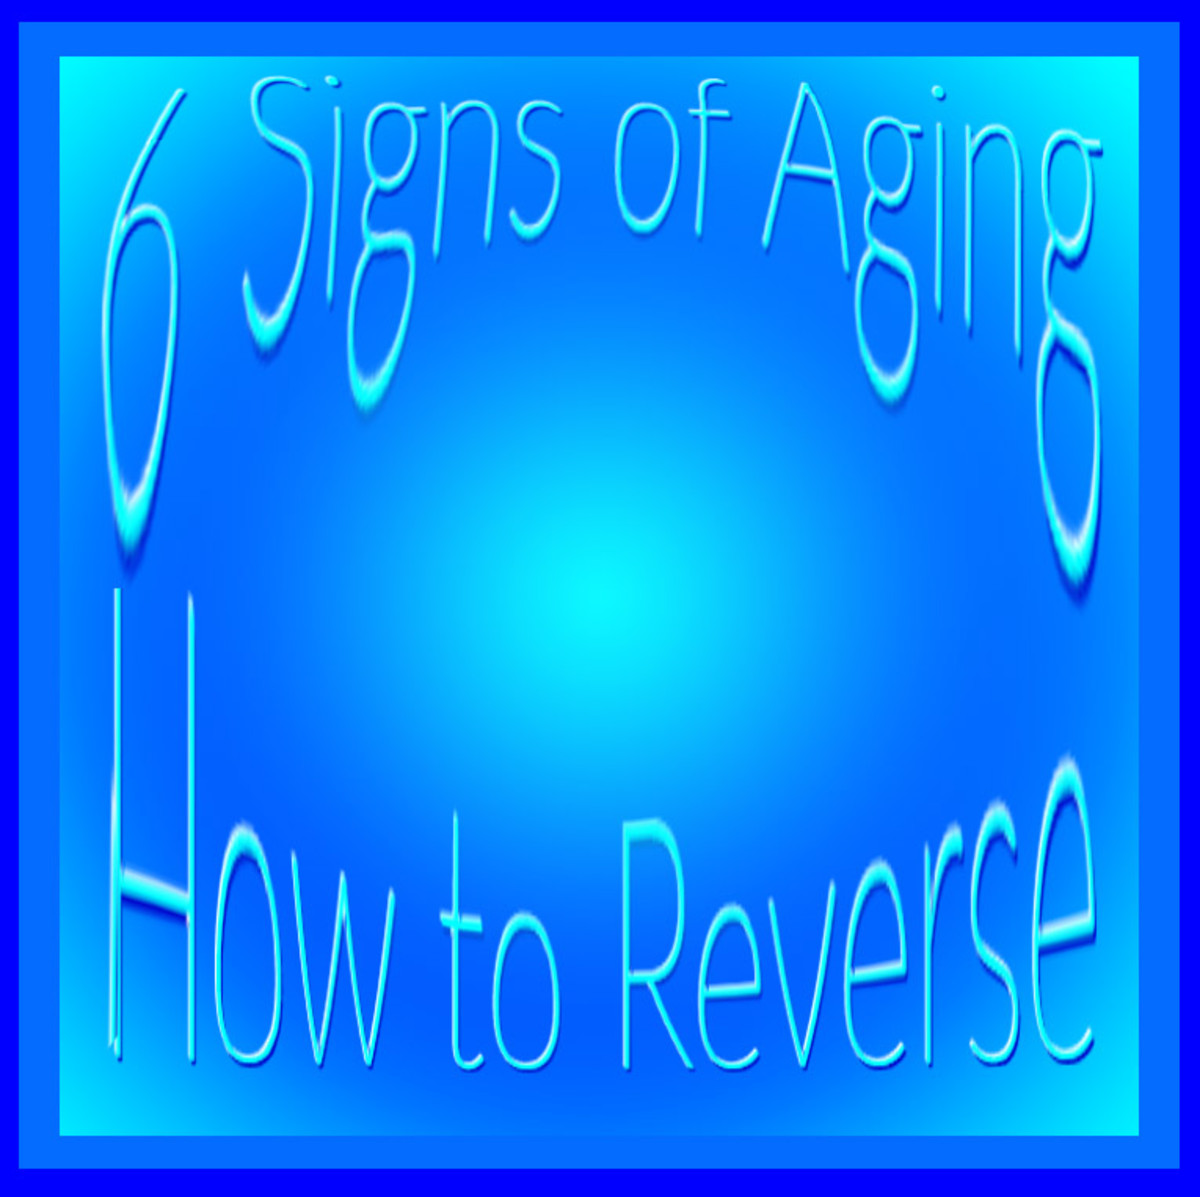 6 Signs of Aging - How To Reverse Them